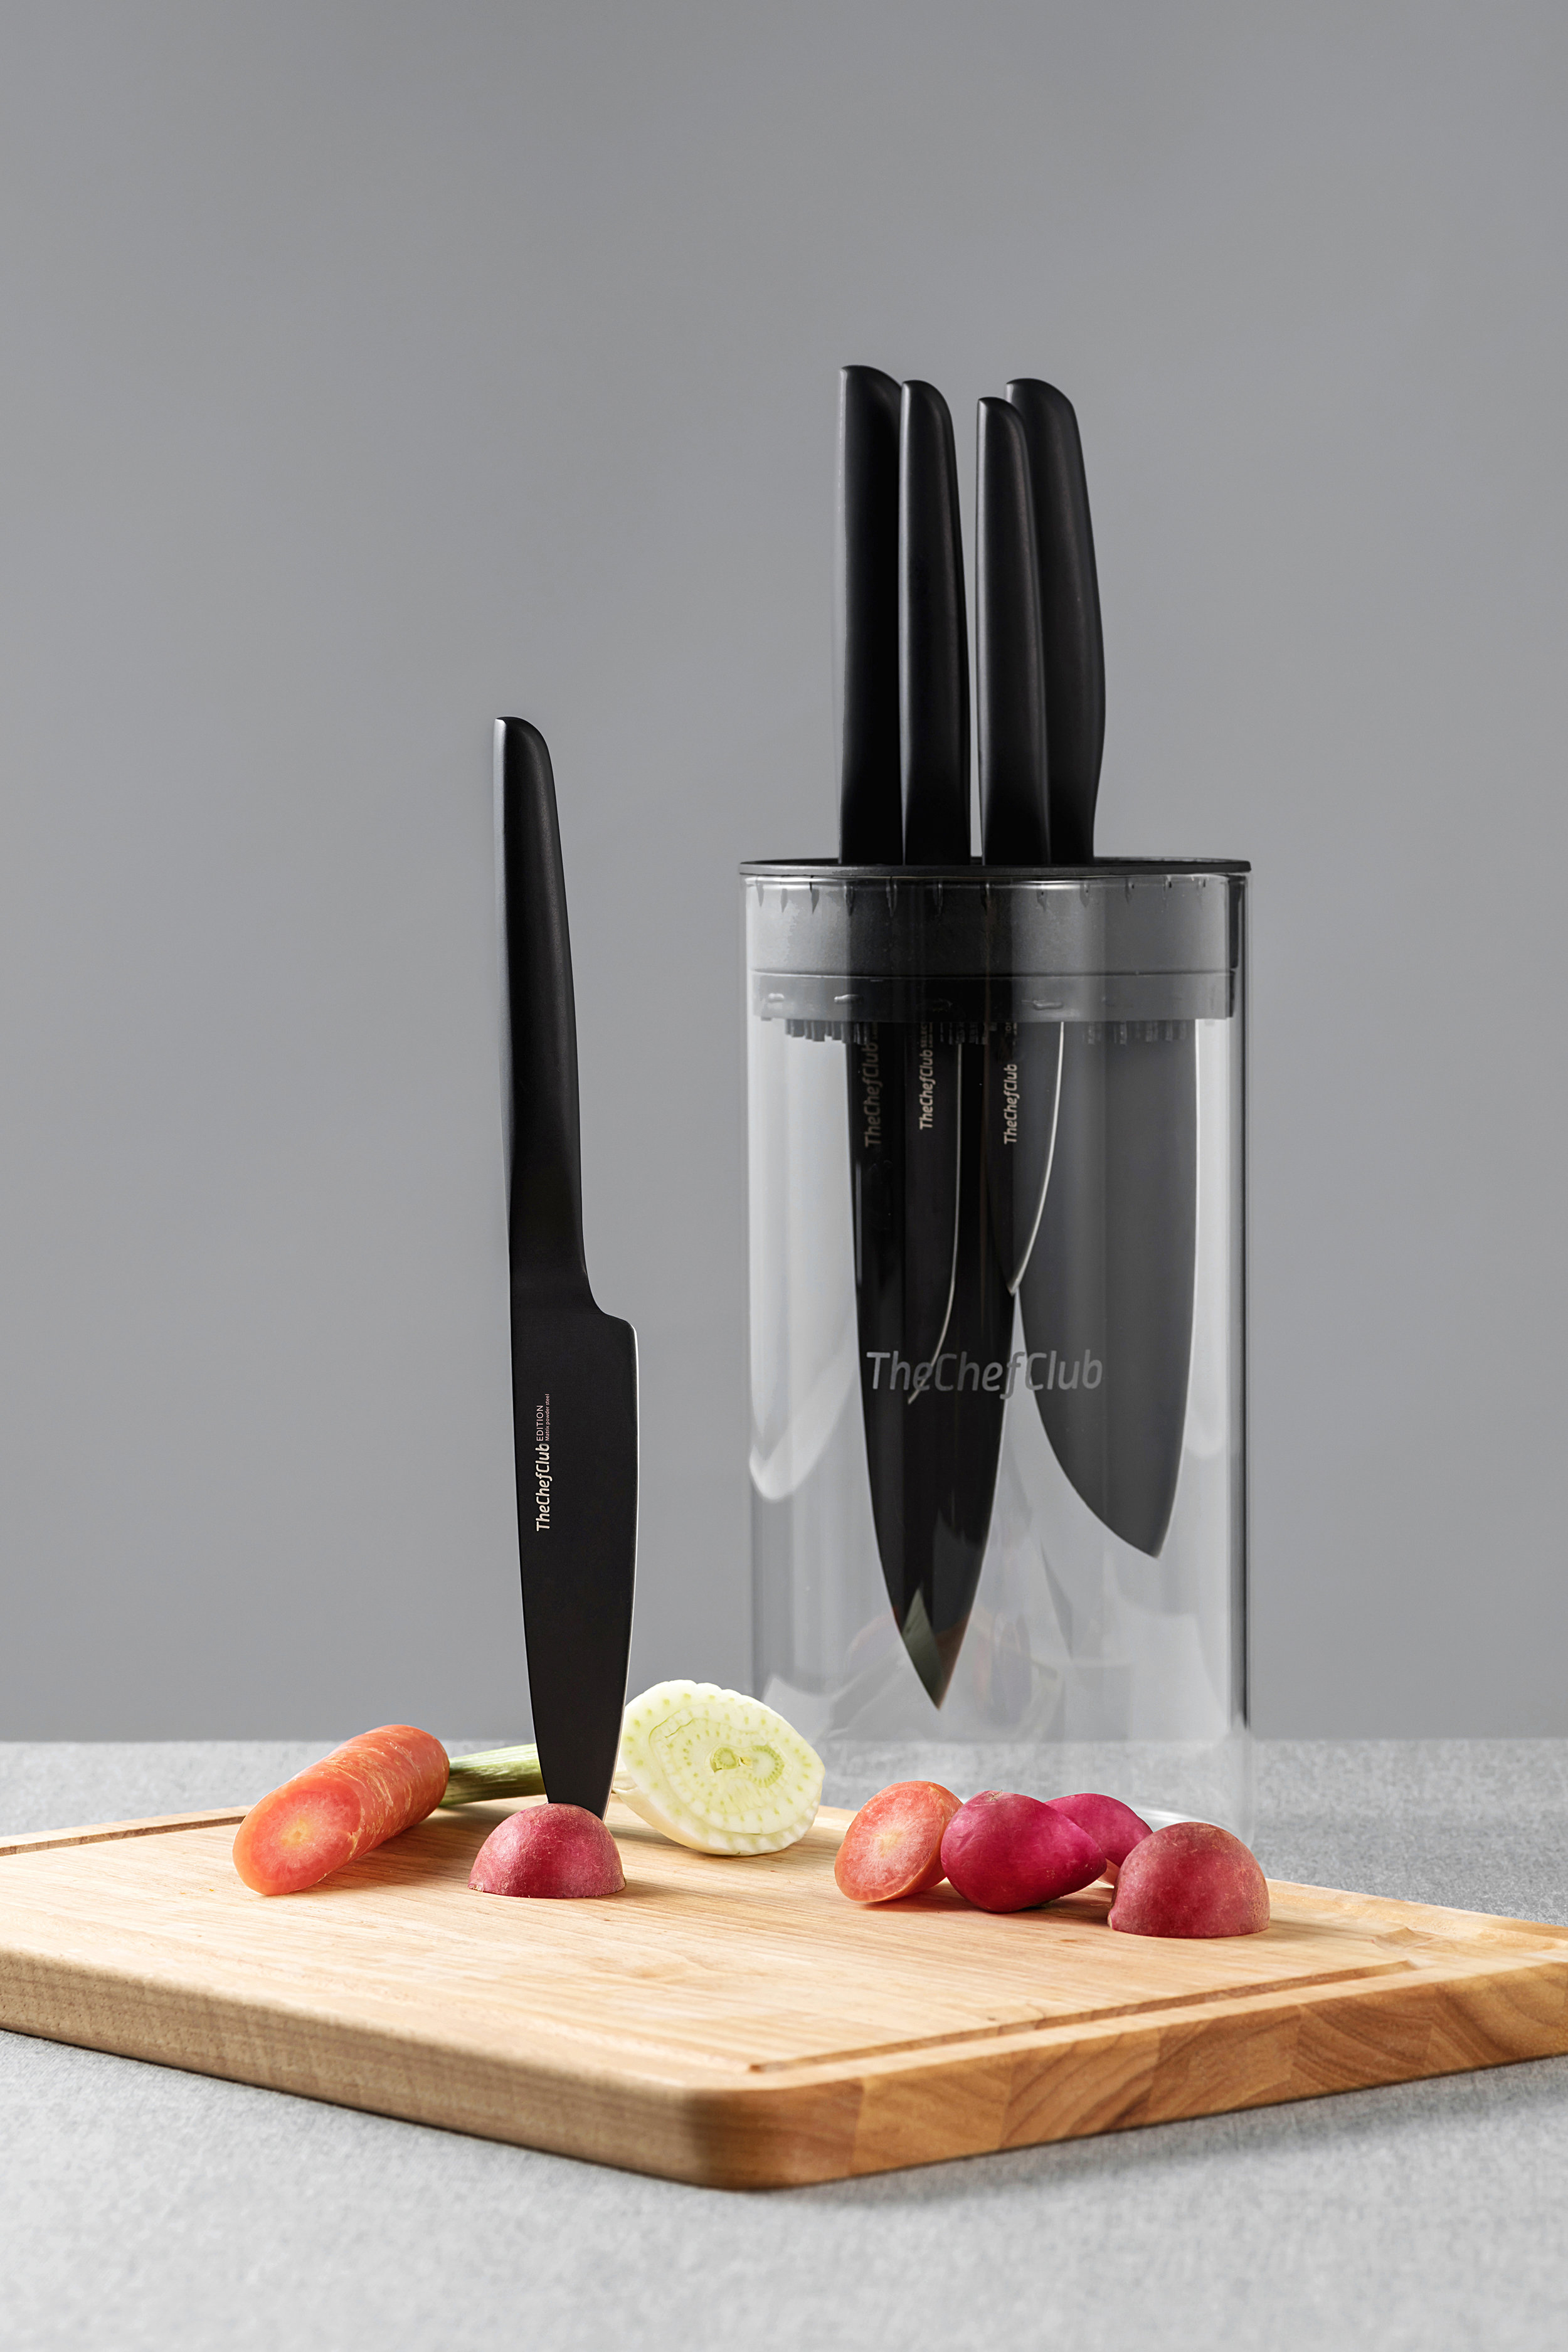 A statement of style - The Jar is a game changer for knife storage in every possible way, stylish, convenient, dishwasher-safe, holds up to 8 pieces of TheChefClub knives,